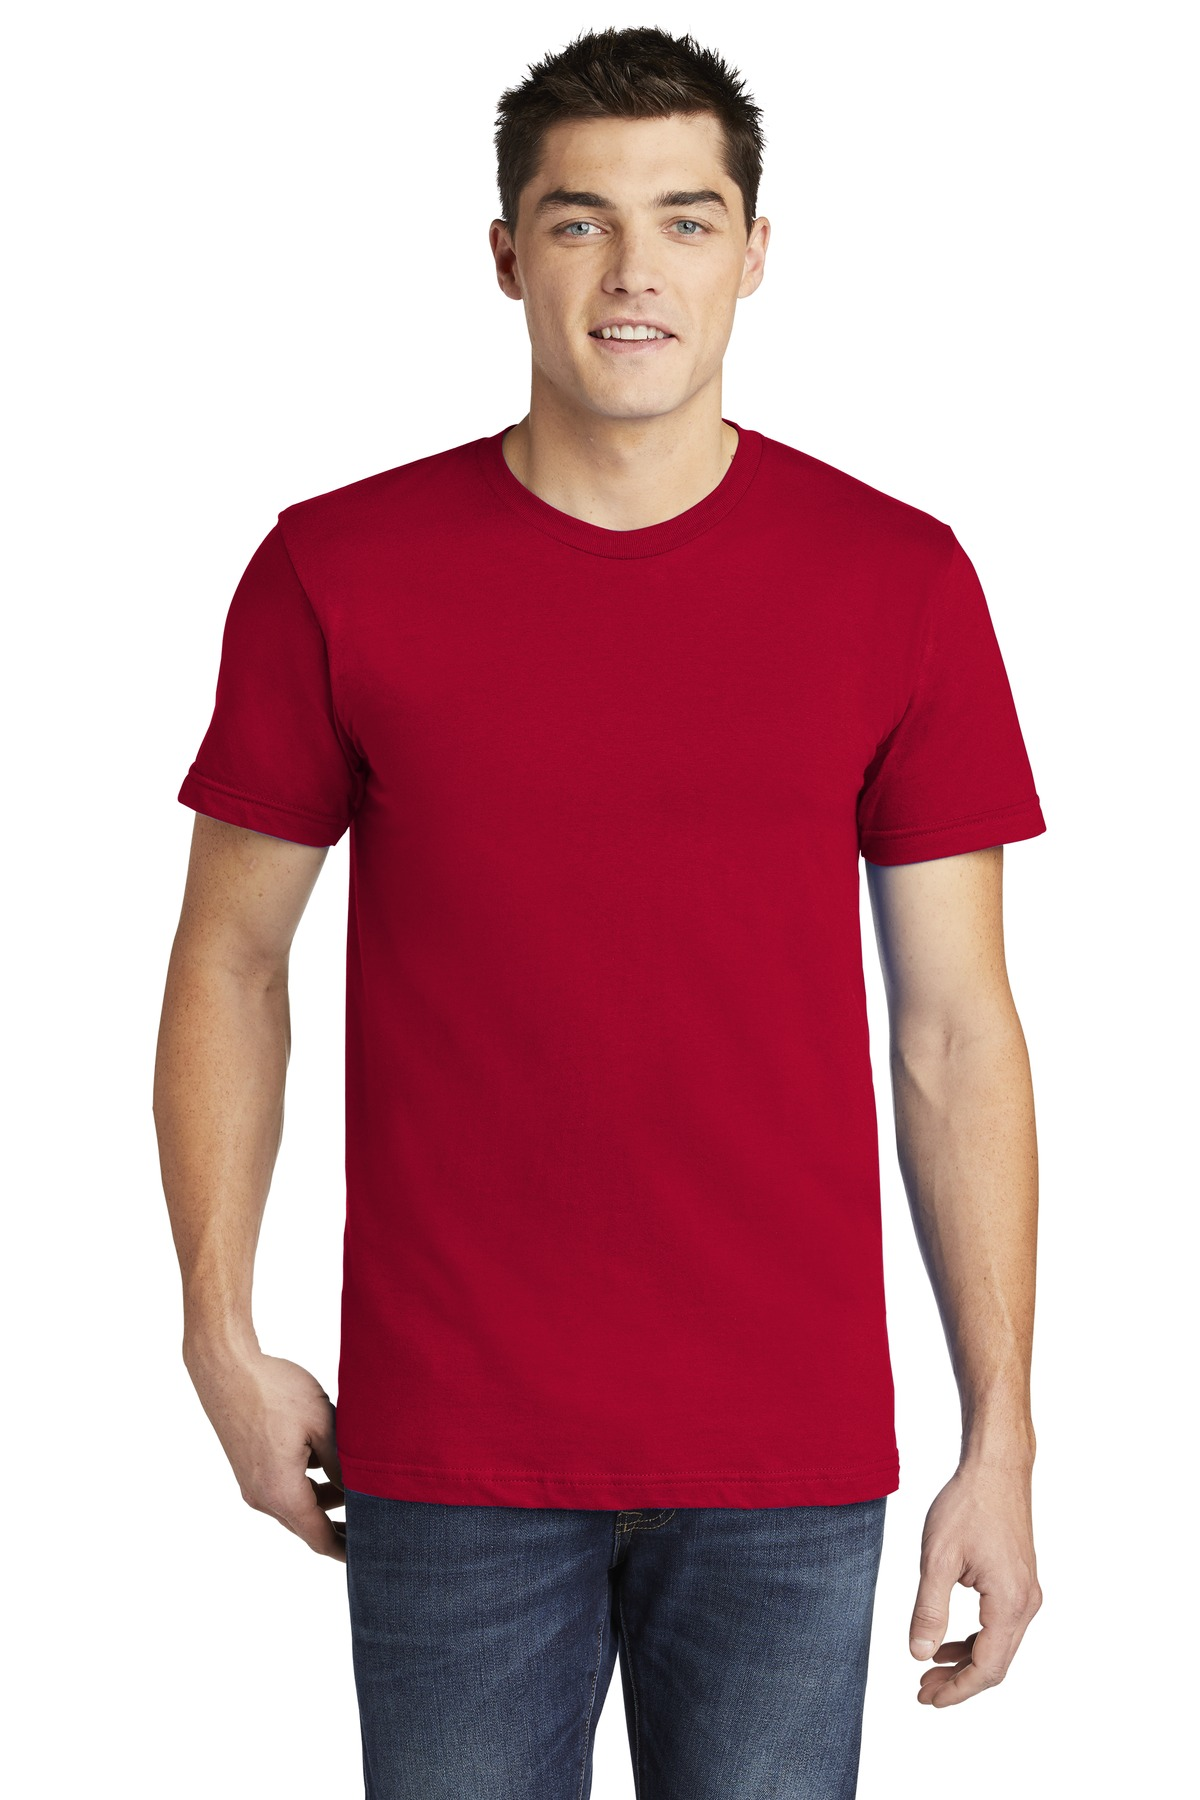 American Apparel  ®  USA Collection Fine Jersey T-Shirt. 2001A - Red